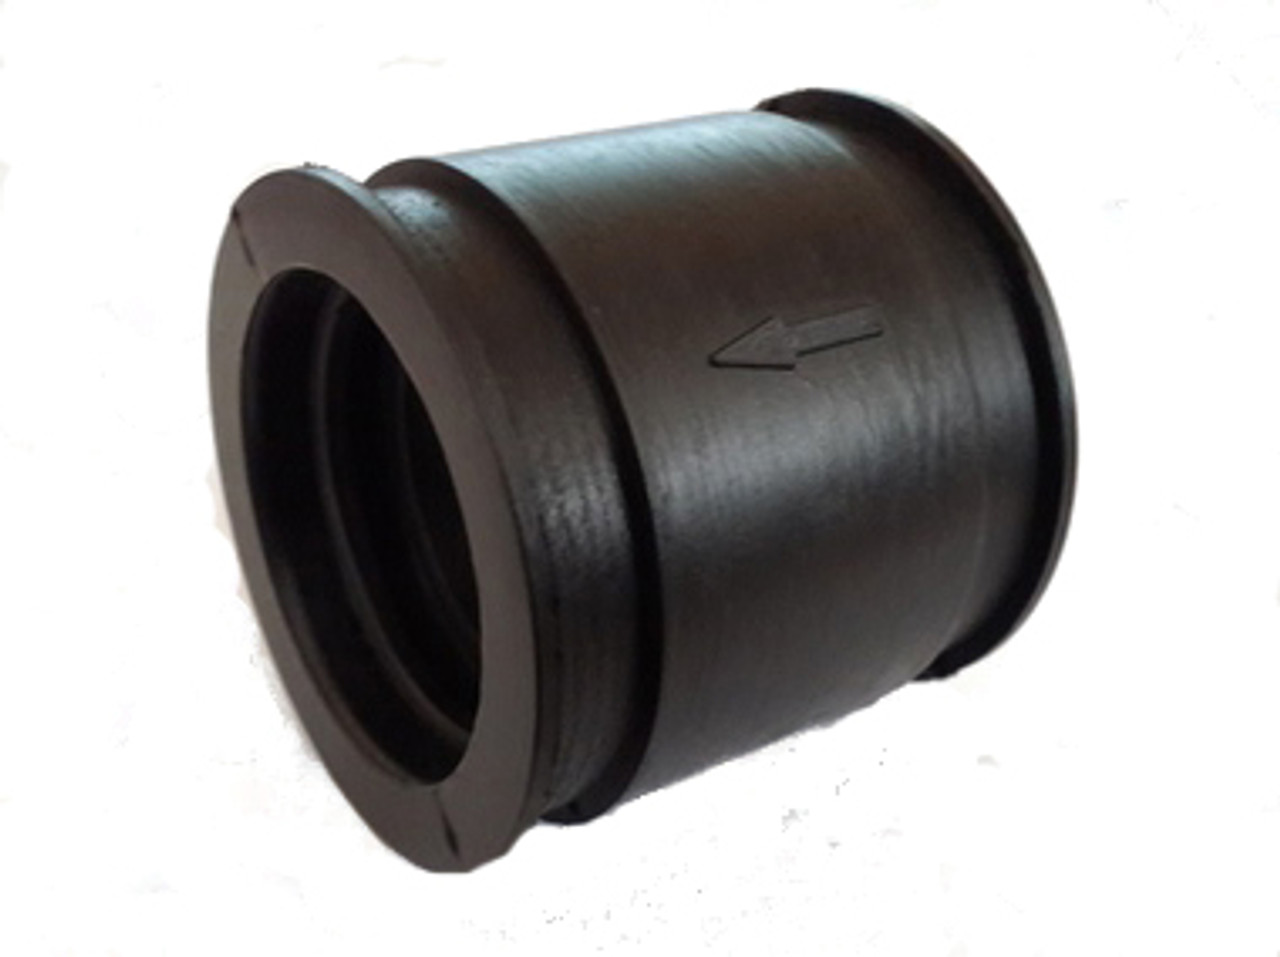 Intake Rubber Connecting Tube Barrel to Mikuni Carb Maico 68-80